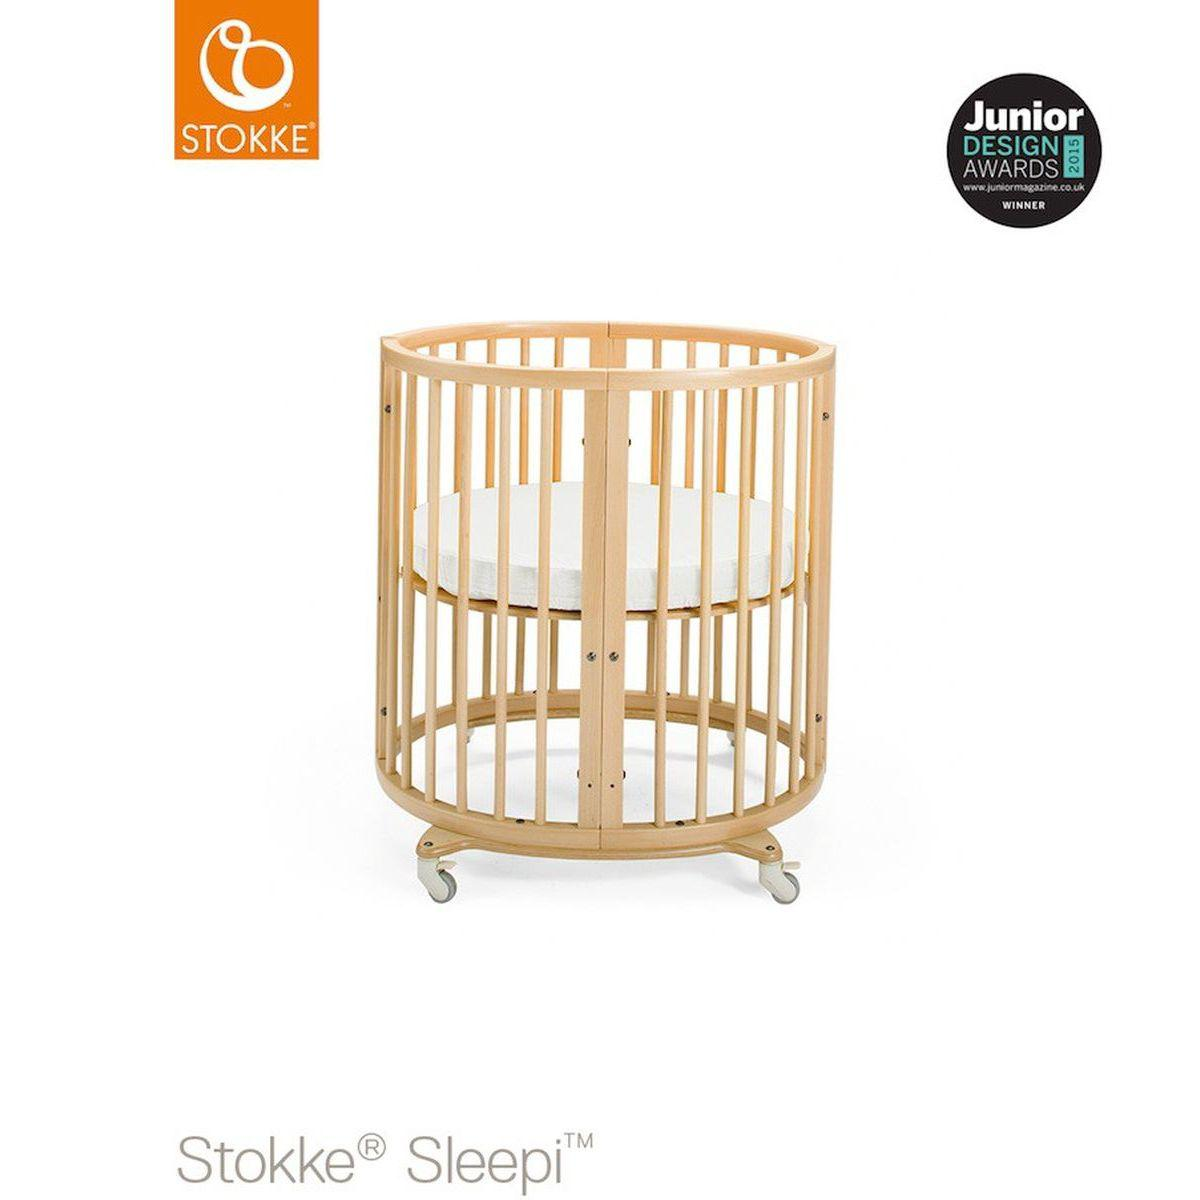 Cuna-cama mini SLEEPI Stokke natural